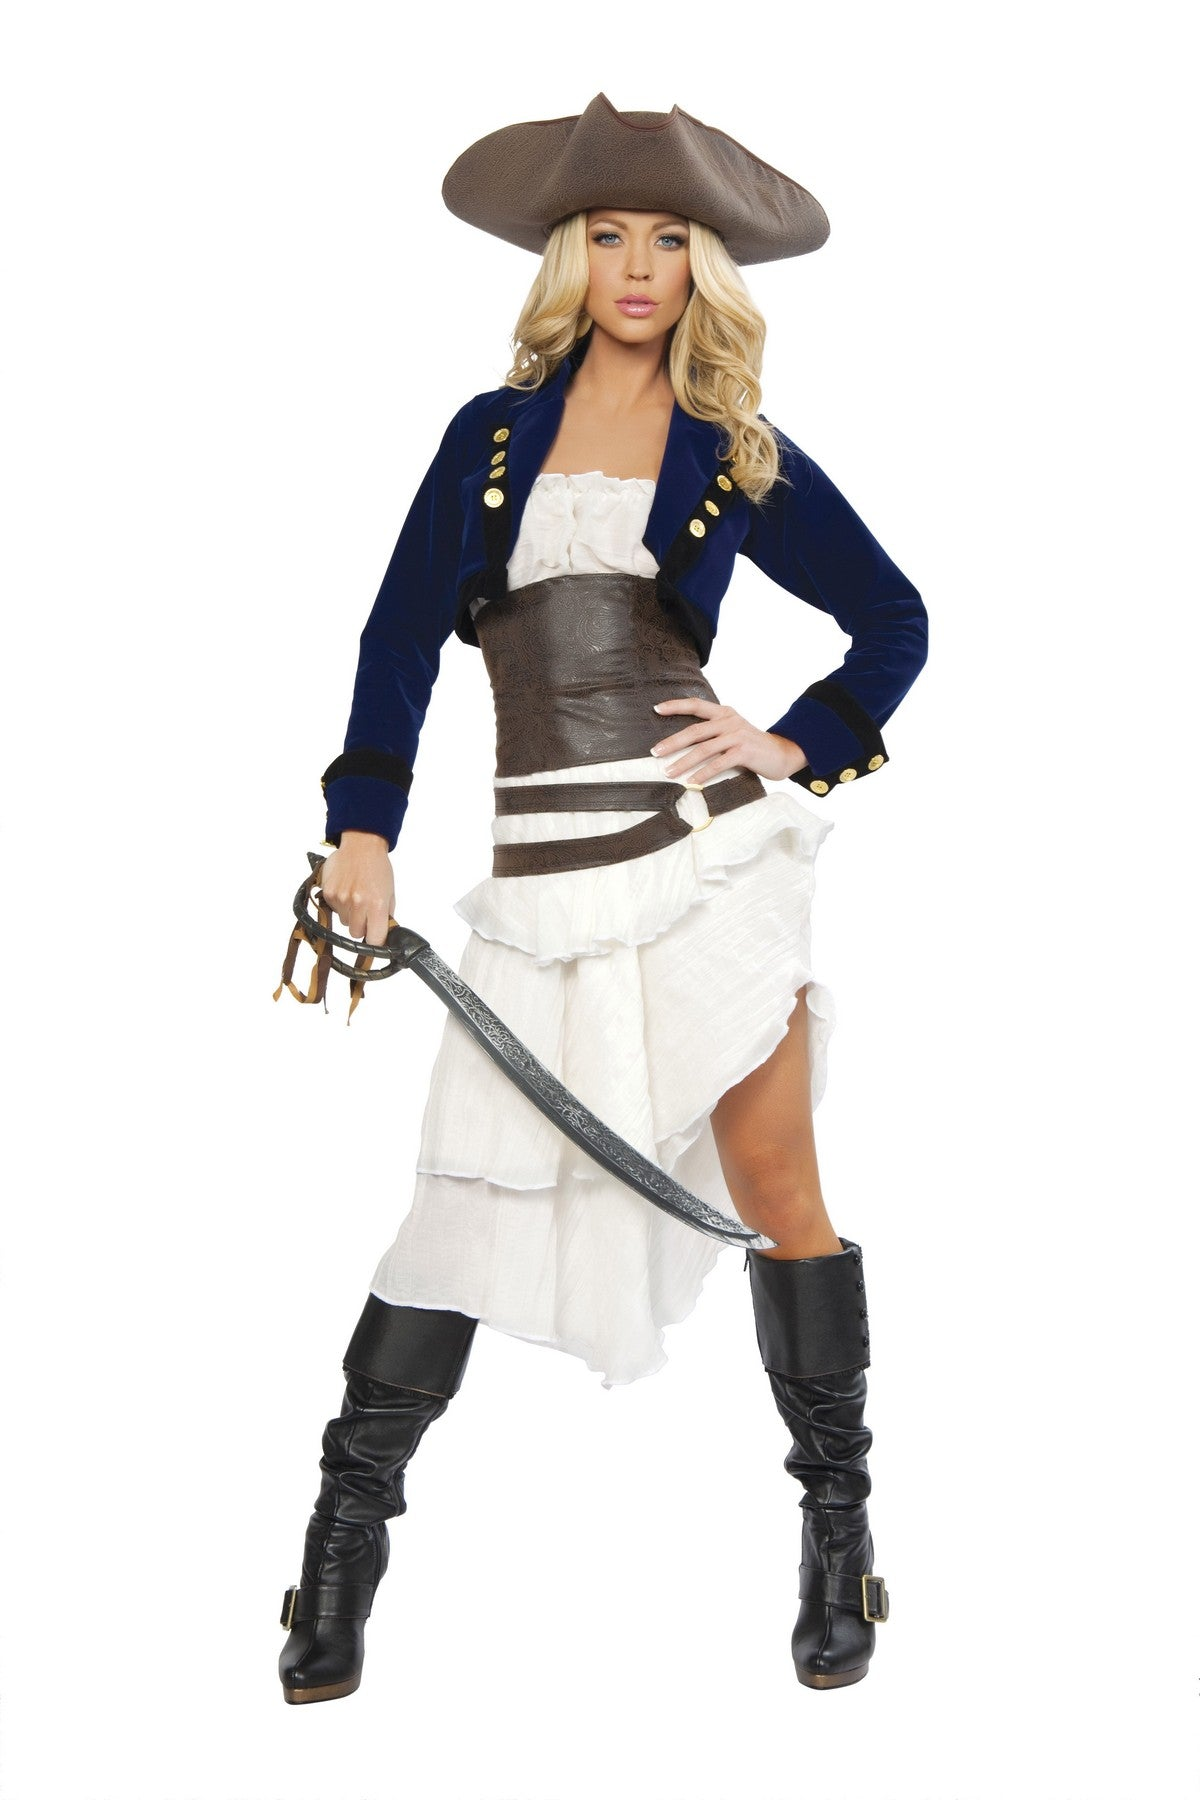 Deluxe Colonial Lady Pirate Costume Set